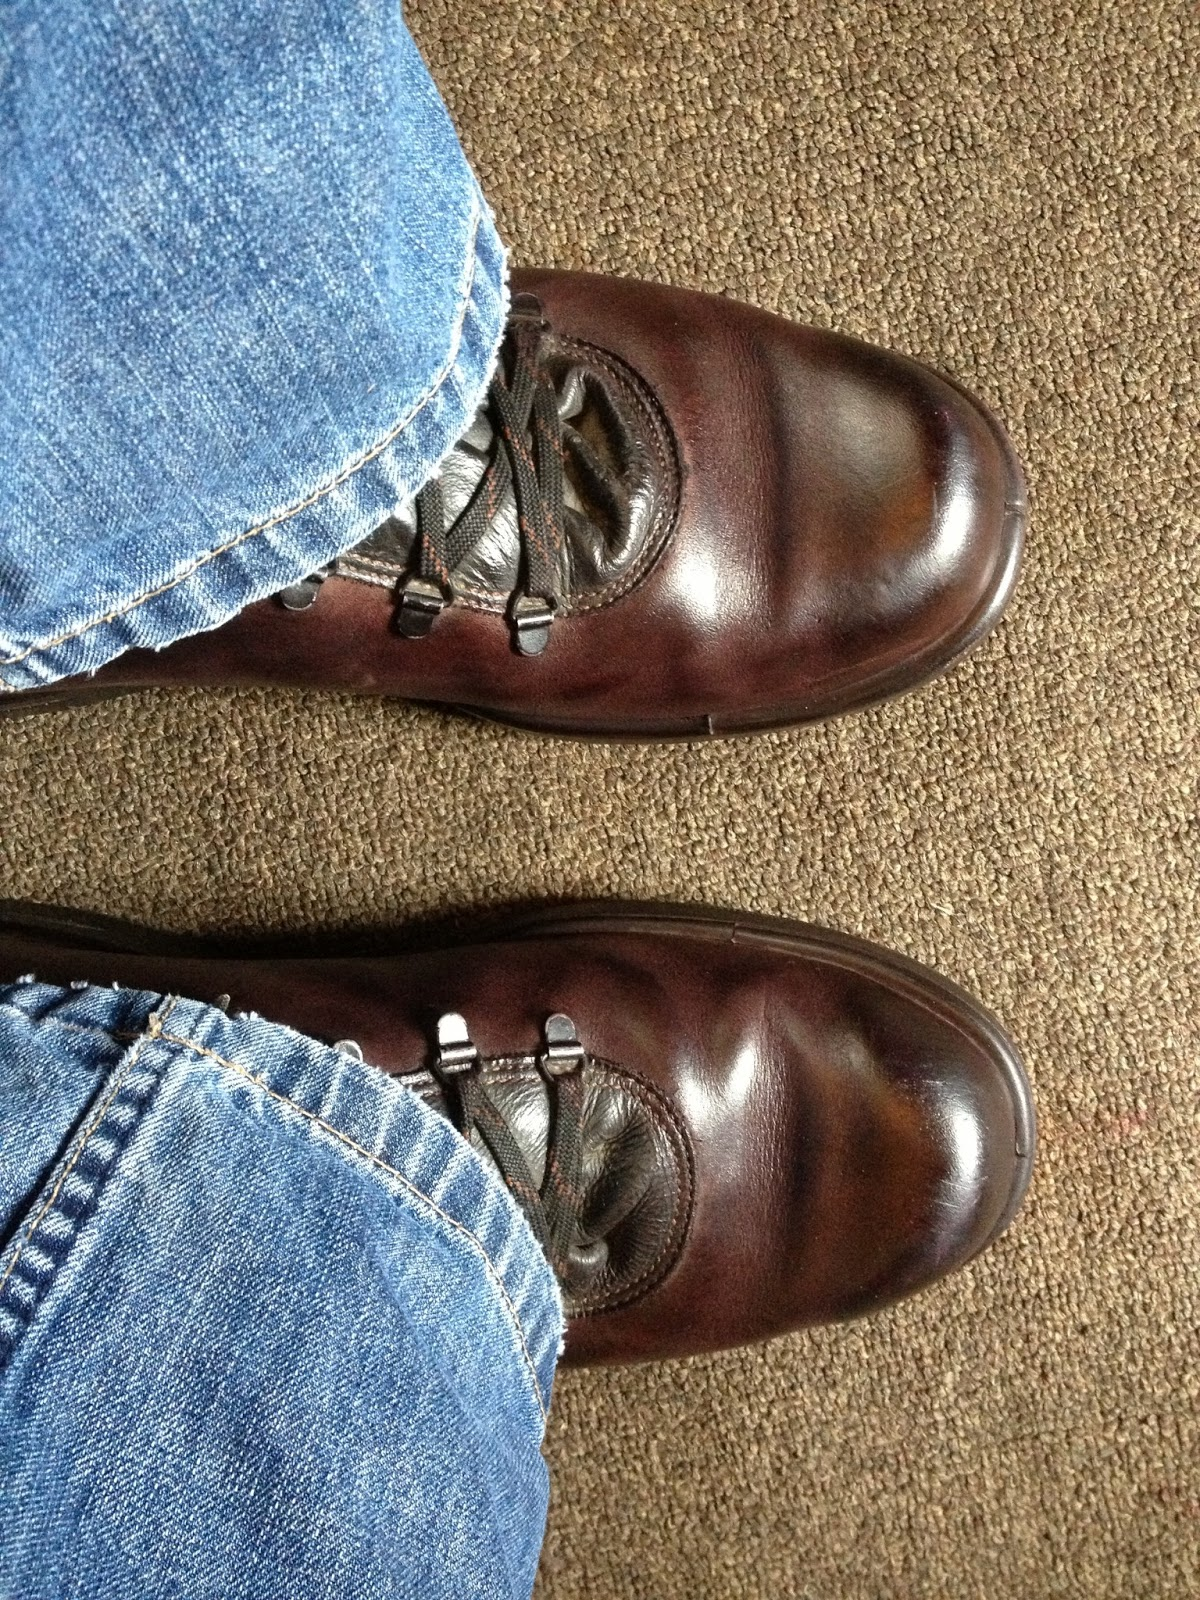 Old Fashioned Liquid Shoe Polish